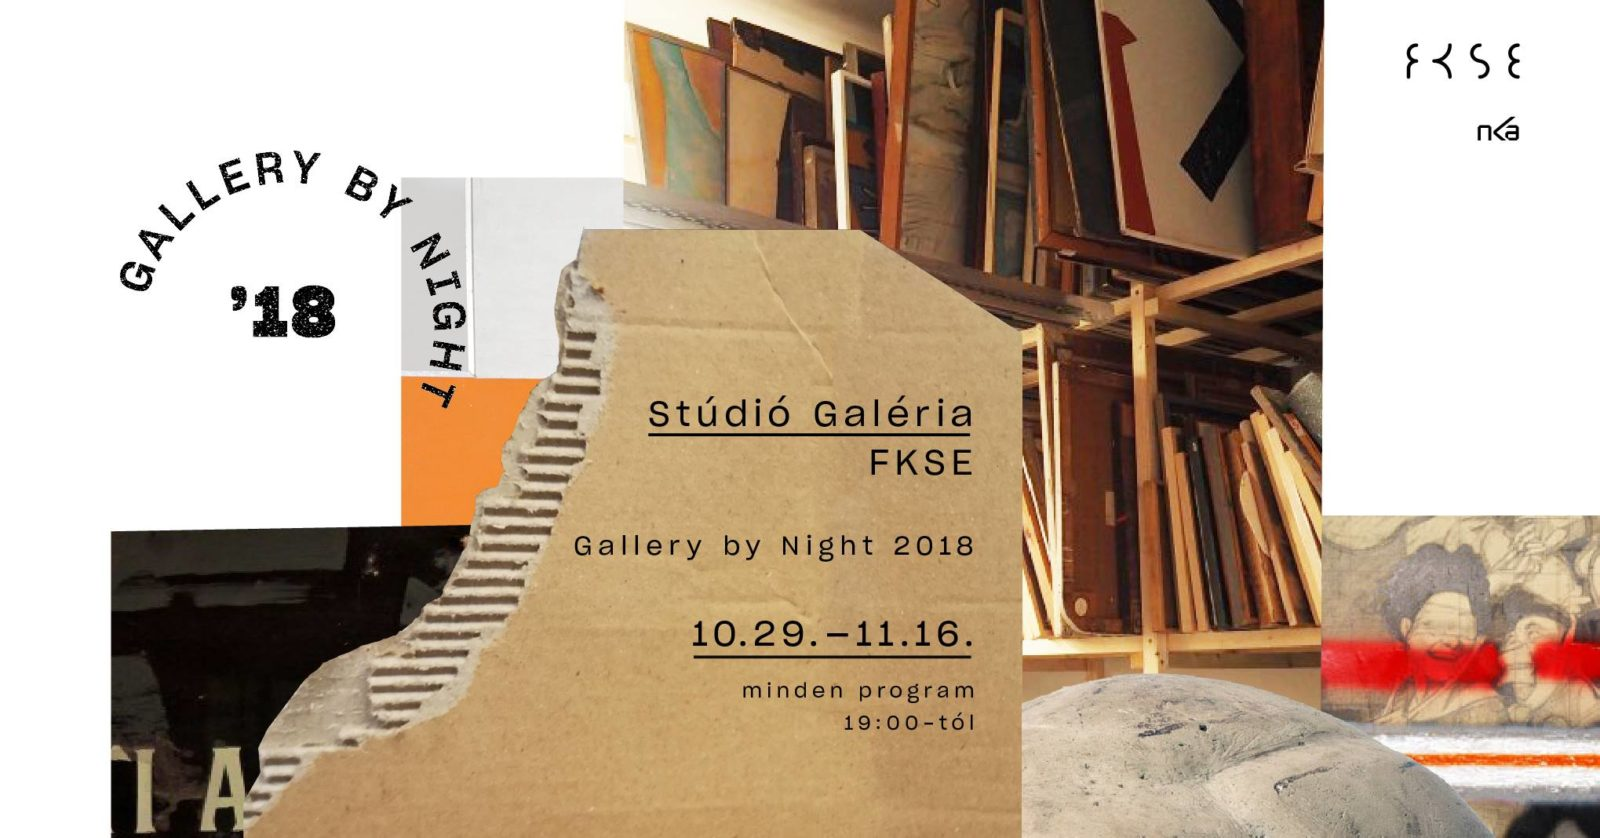 Gallery by Night 2018